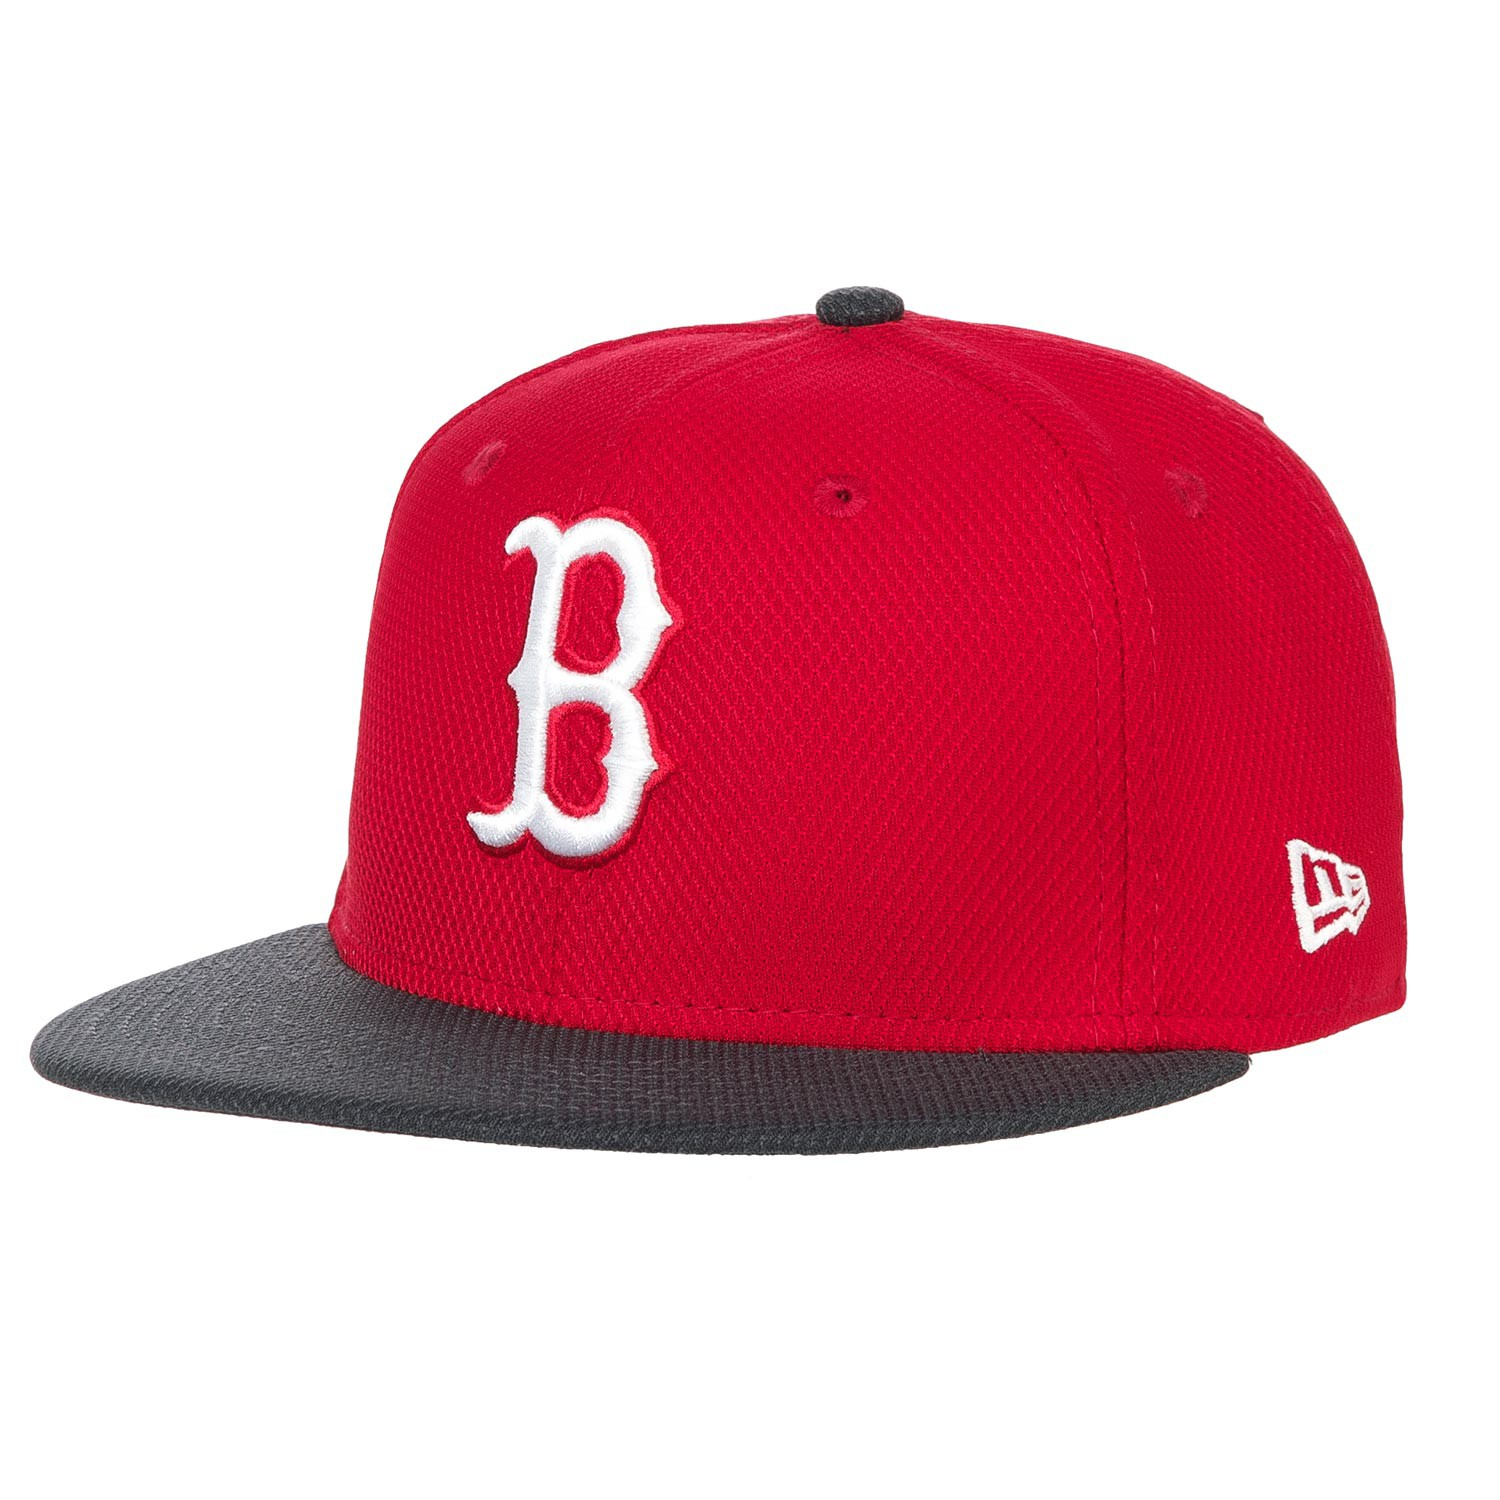 Kšiltovka New Era Boston Red Sox 9Fifty Diamond red/black vel.M/L 16 + doručení do 24 hodin